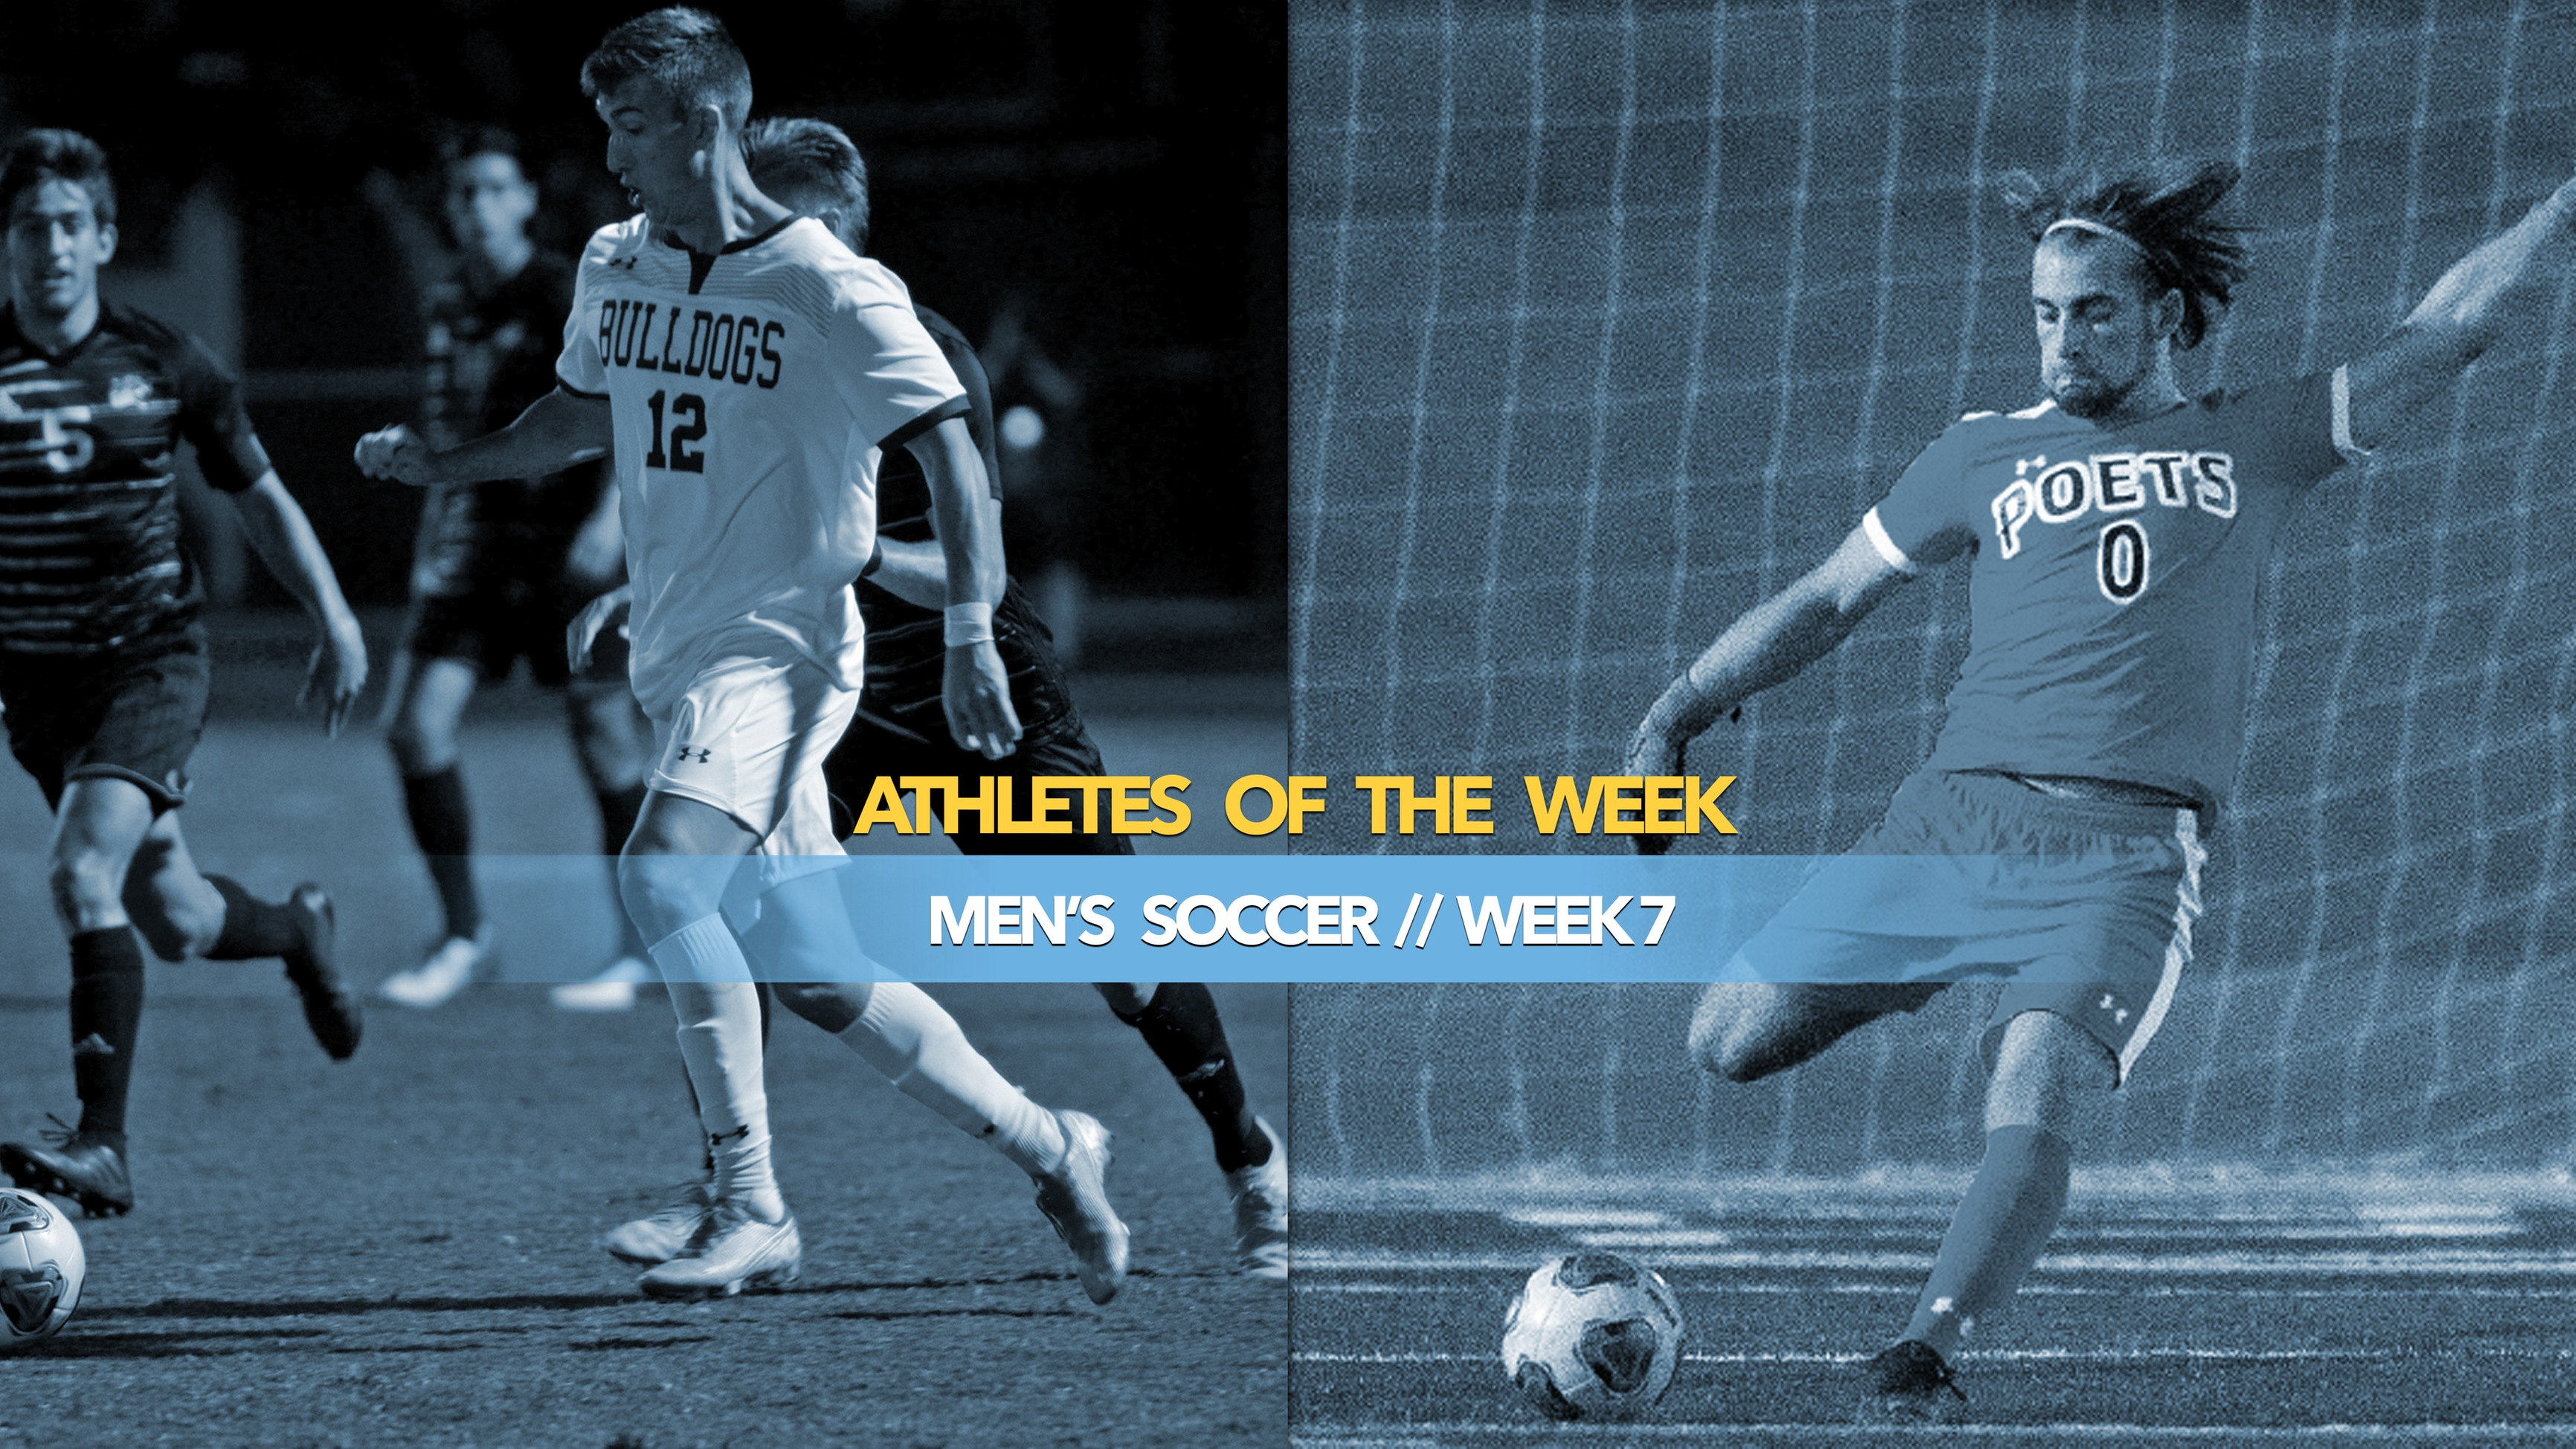 Men's Soccer Athletes of the Week: October 14, 2019